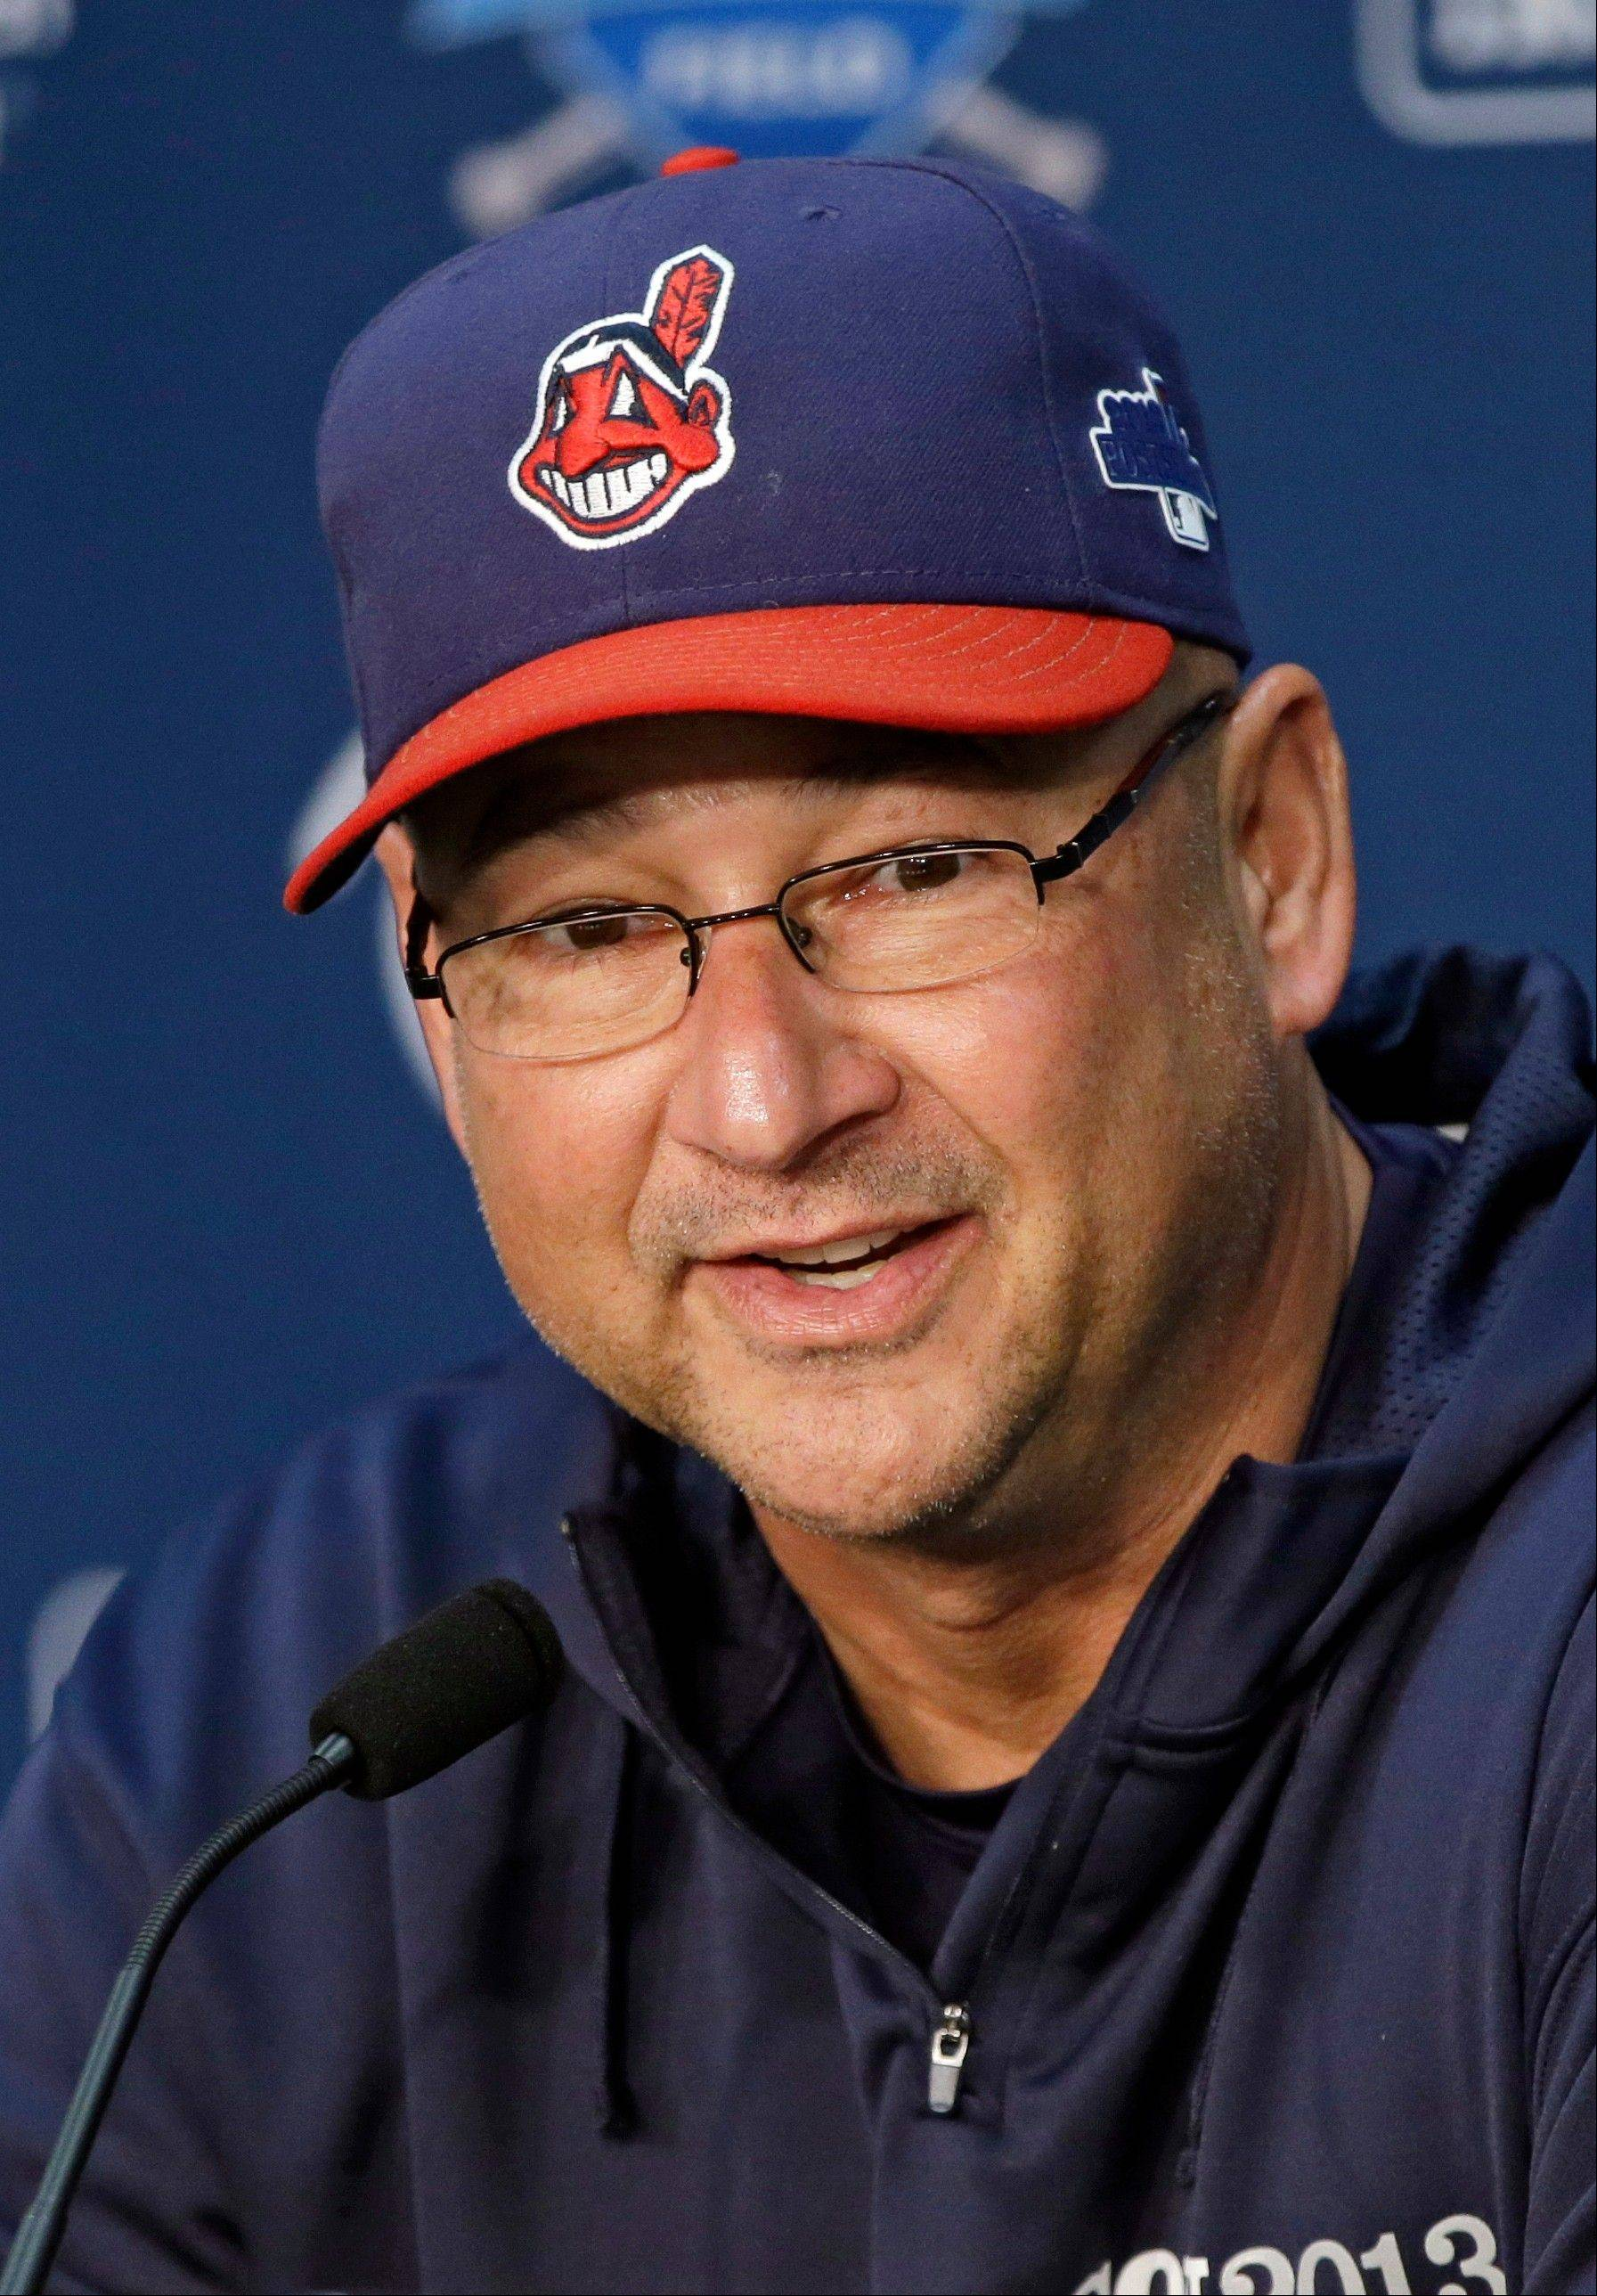 Cleveland Indians manager Terry Francona was named the AL manager of the year by the Baseball Writers' Association of America on Tuesday.